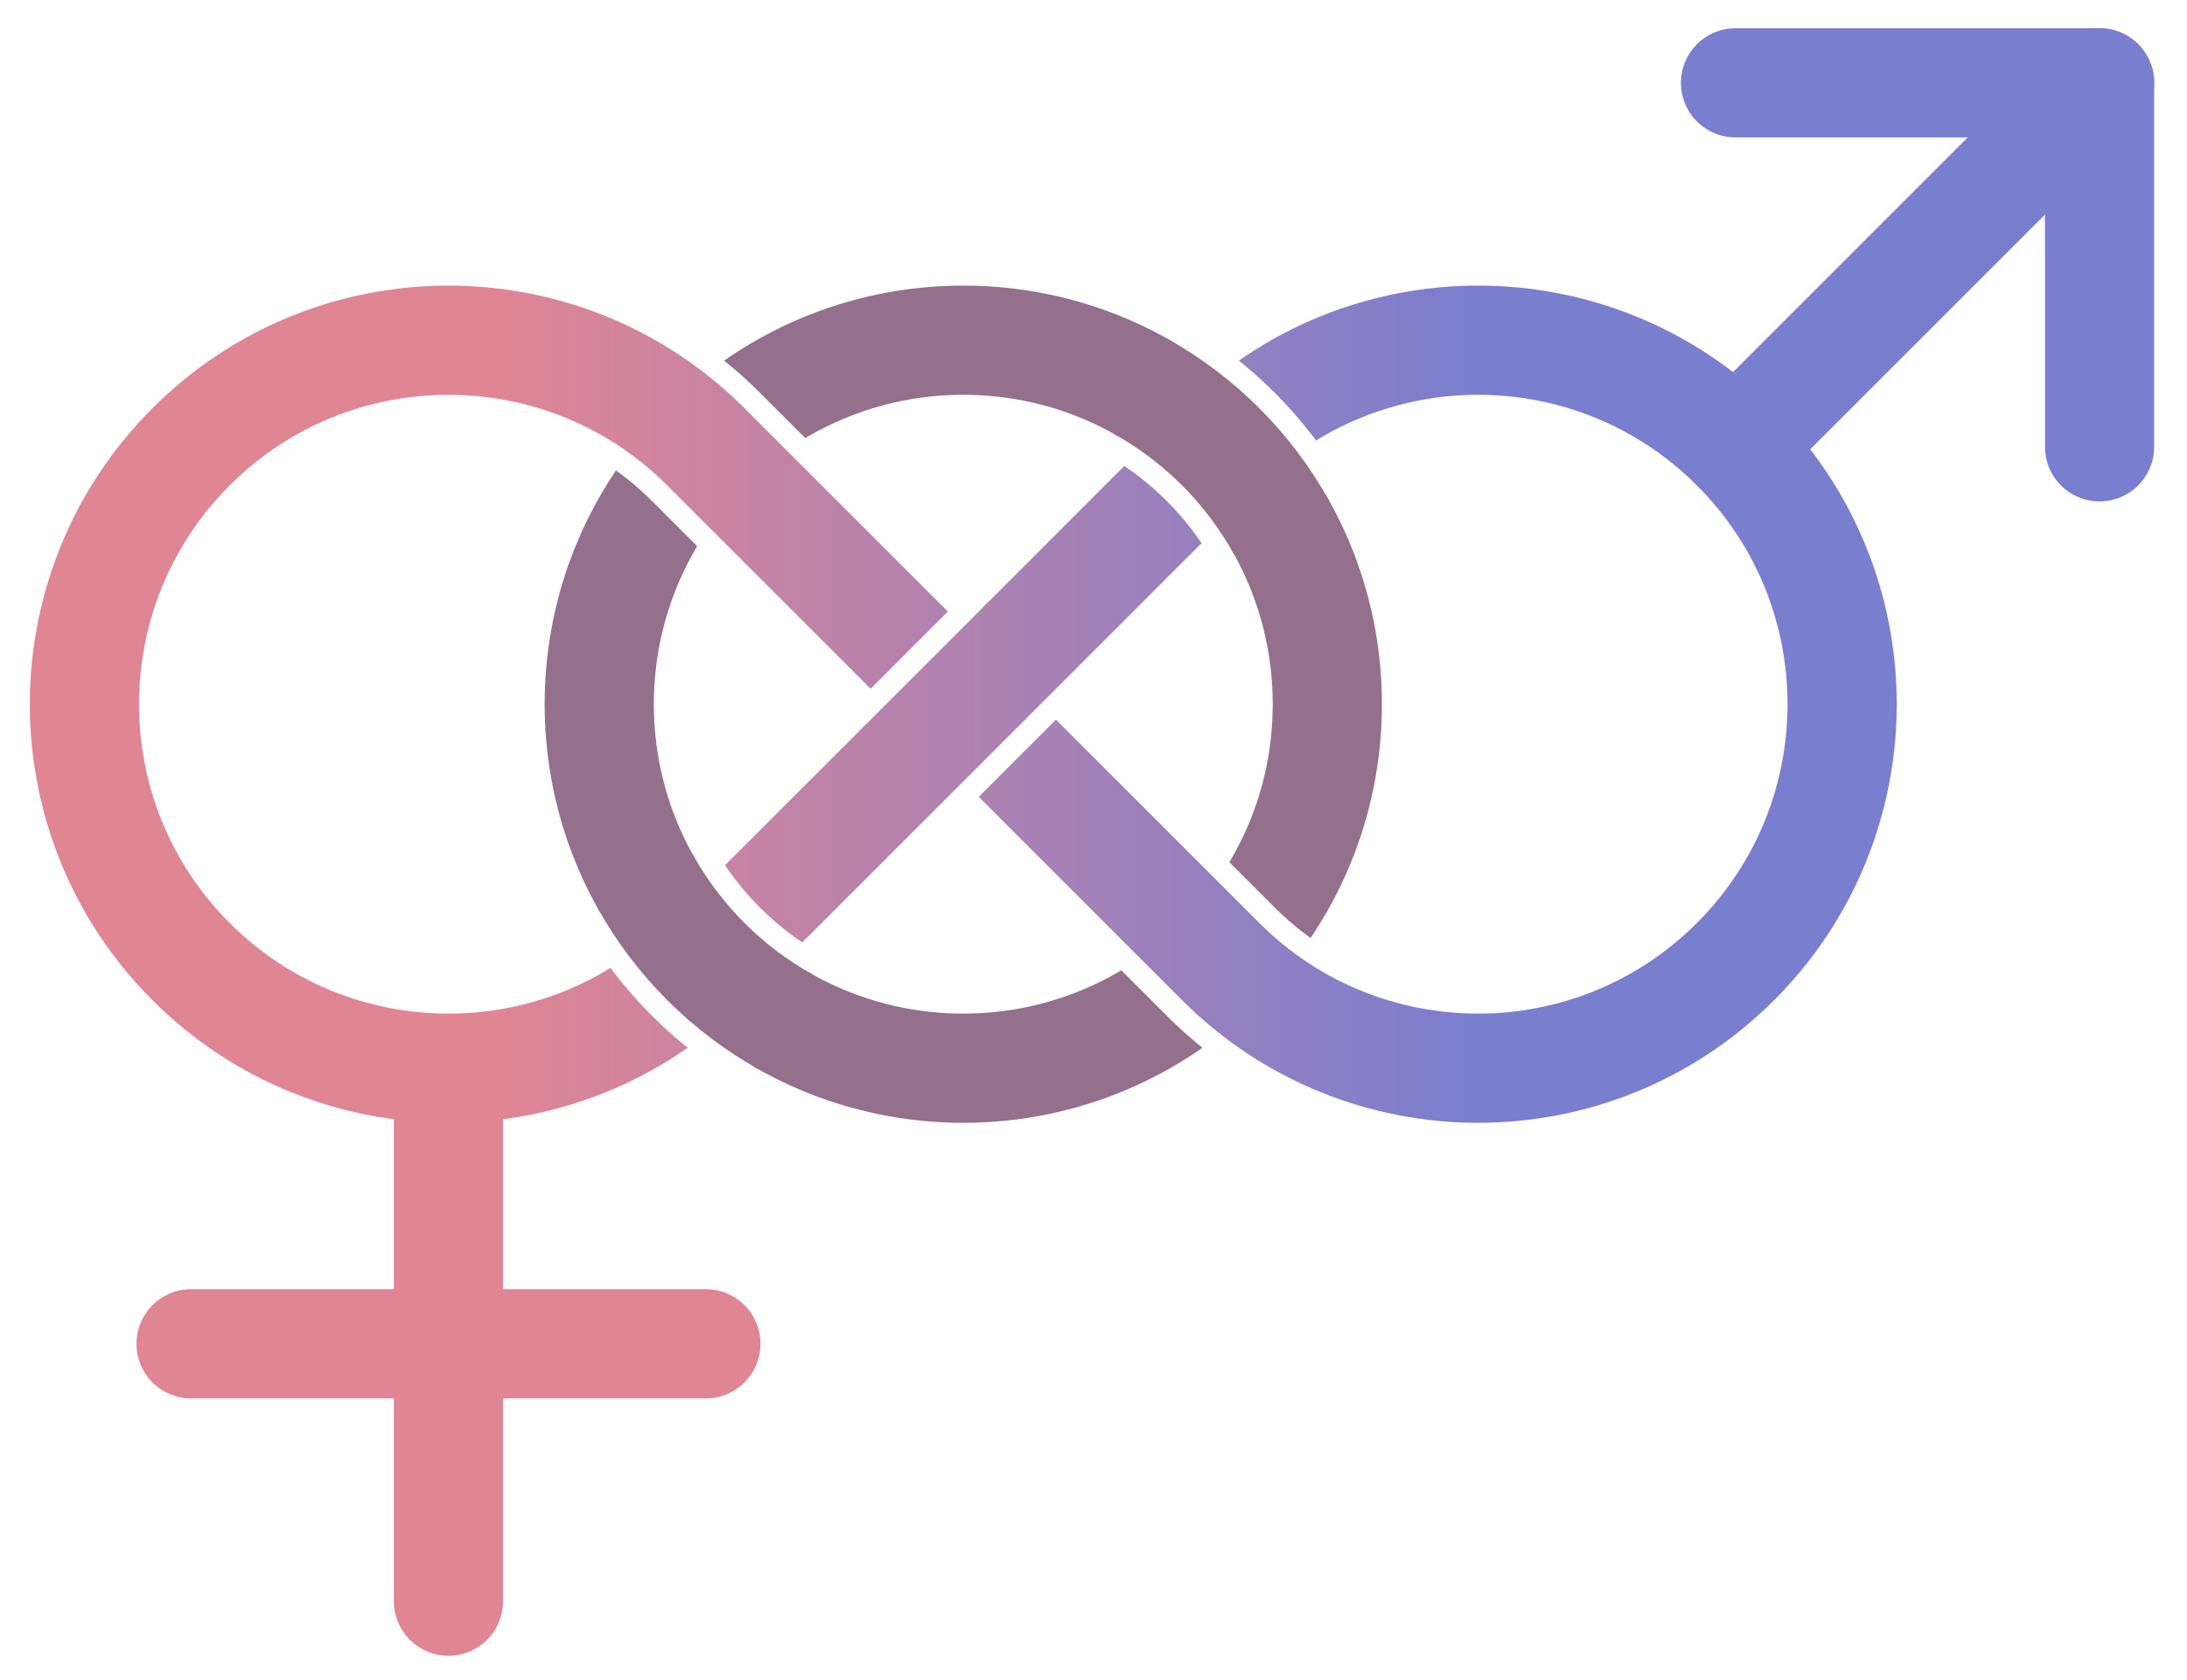 2000px-Whitehead-link-alternative-sexuality-symbol svg.png